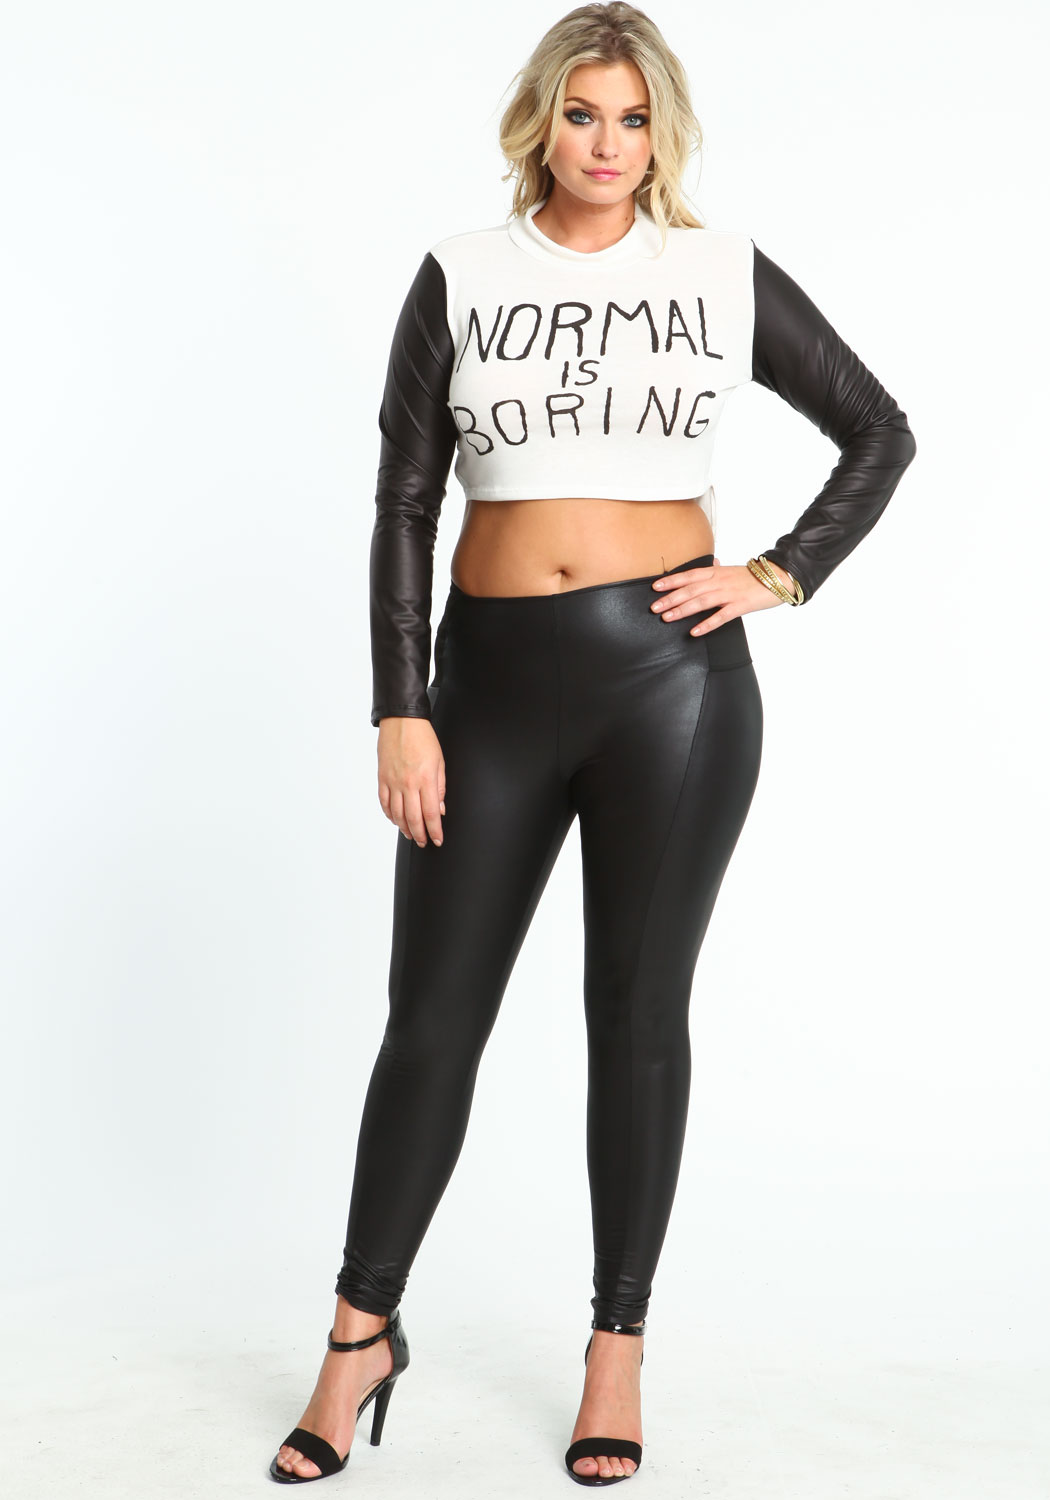 look slimmer and taller with plus size leggings - storiestrending